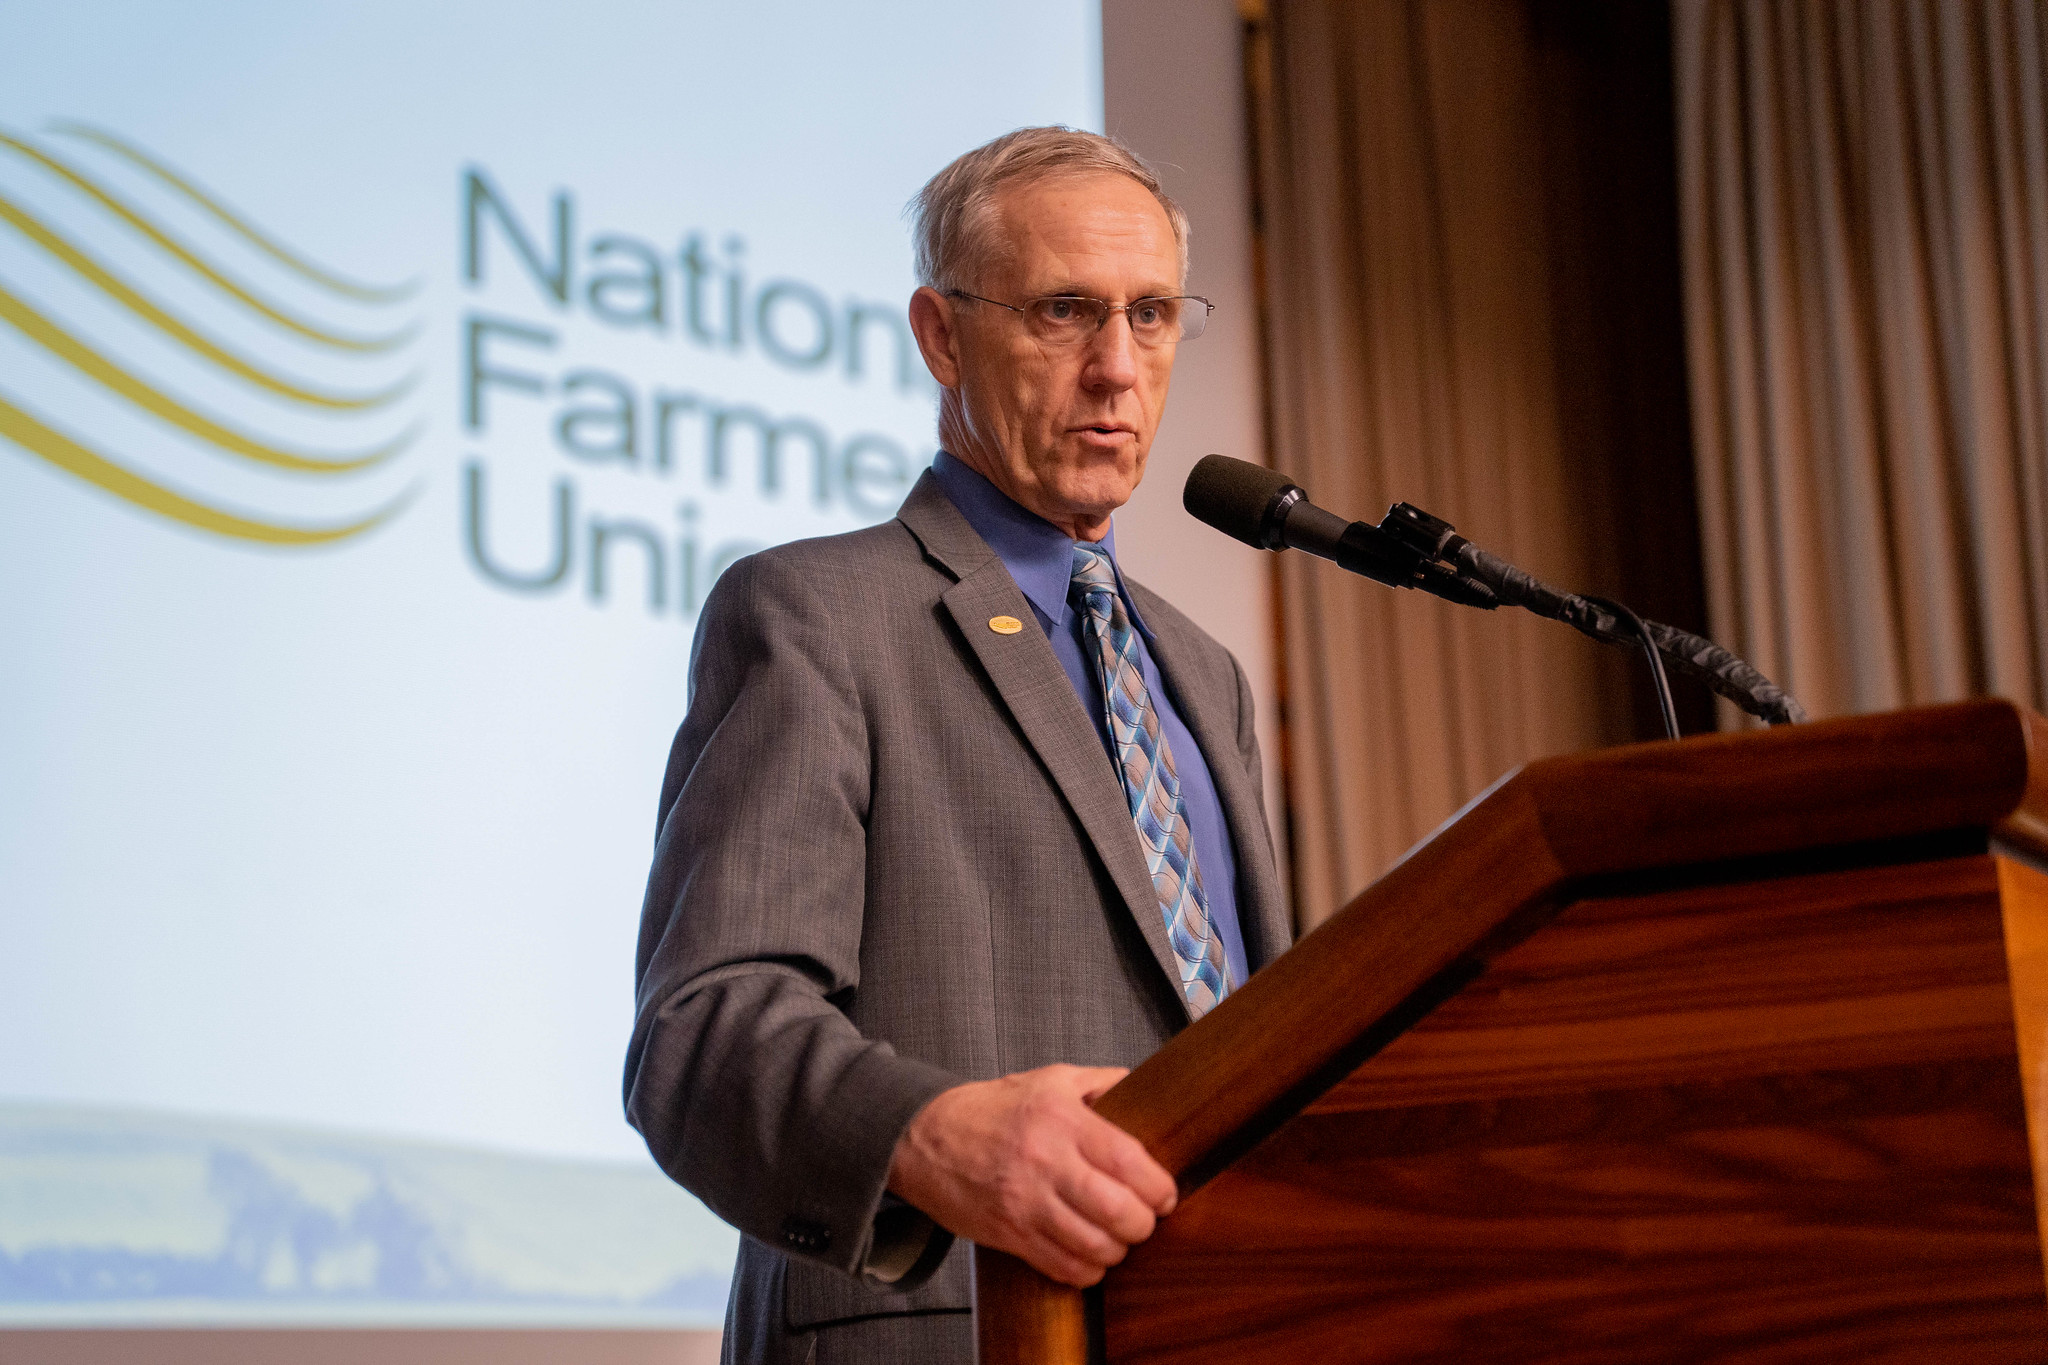 Johnson to Retire from Role as Farmers Union President